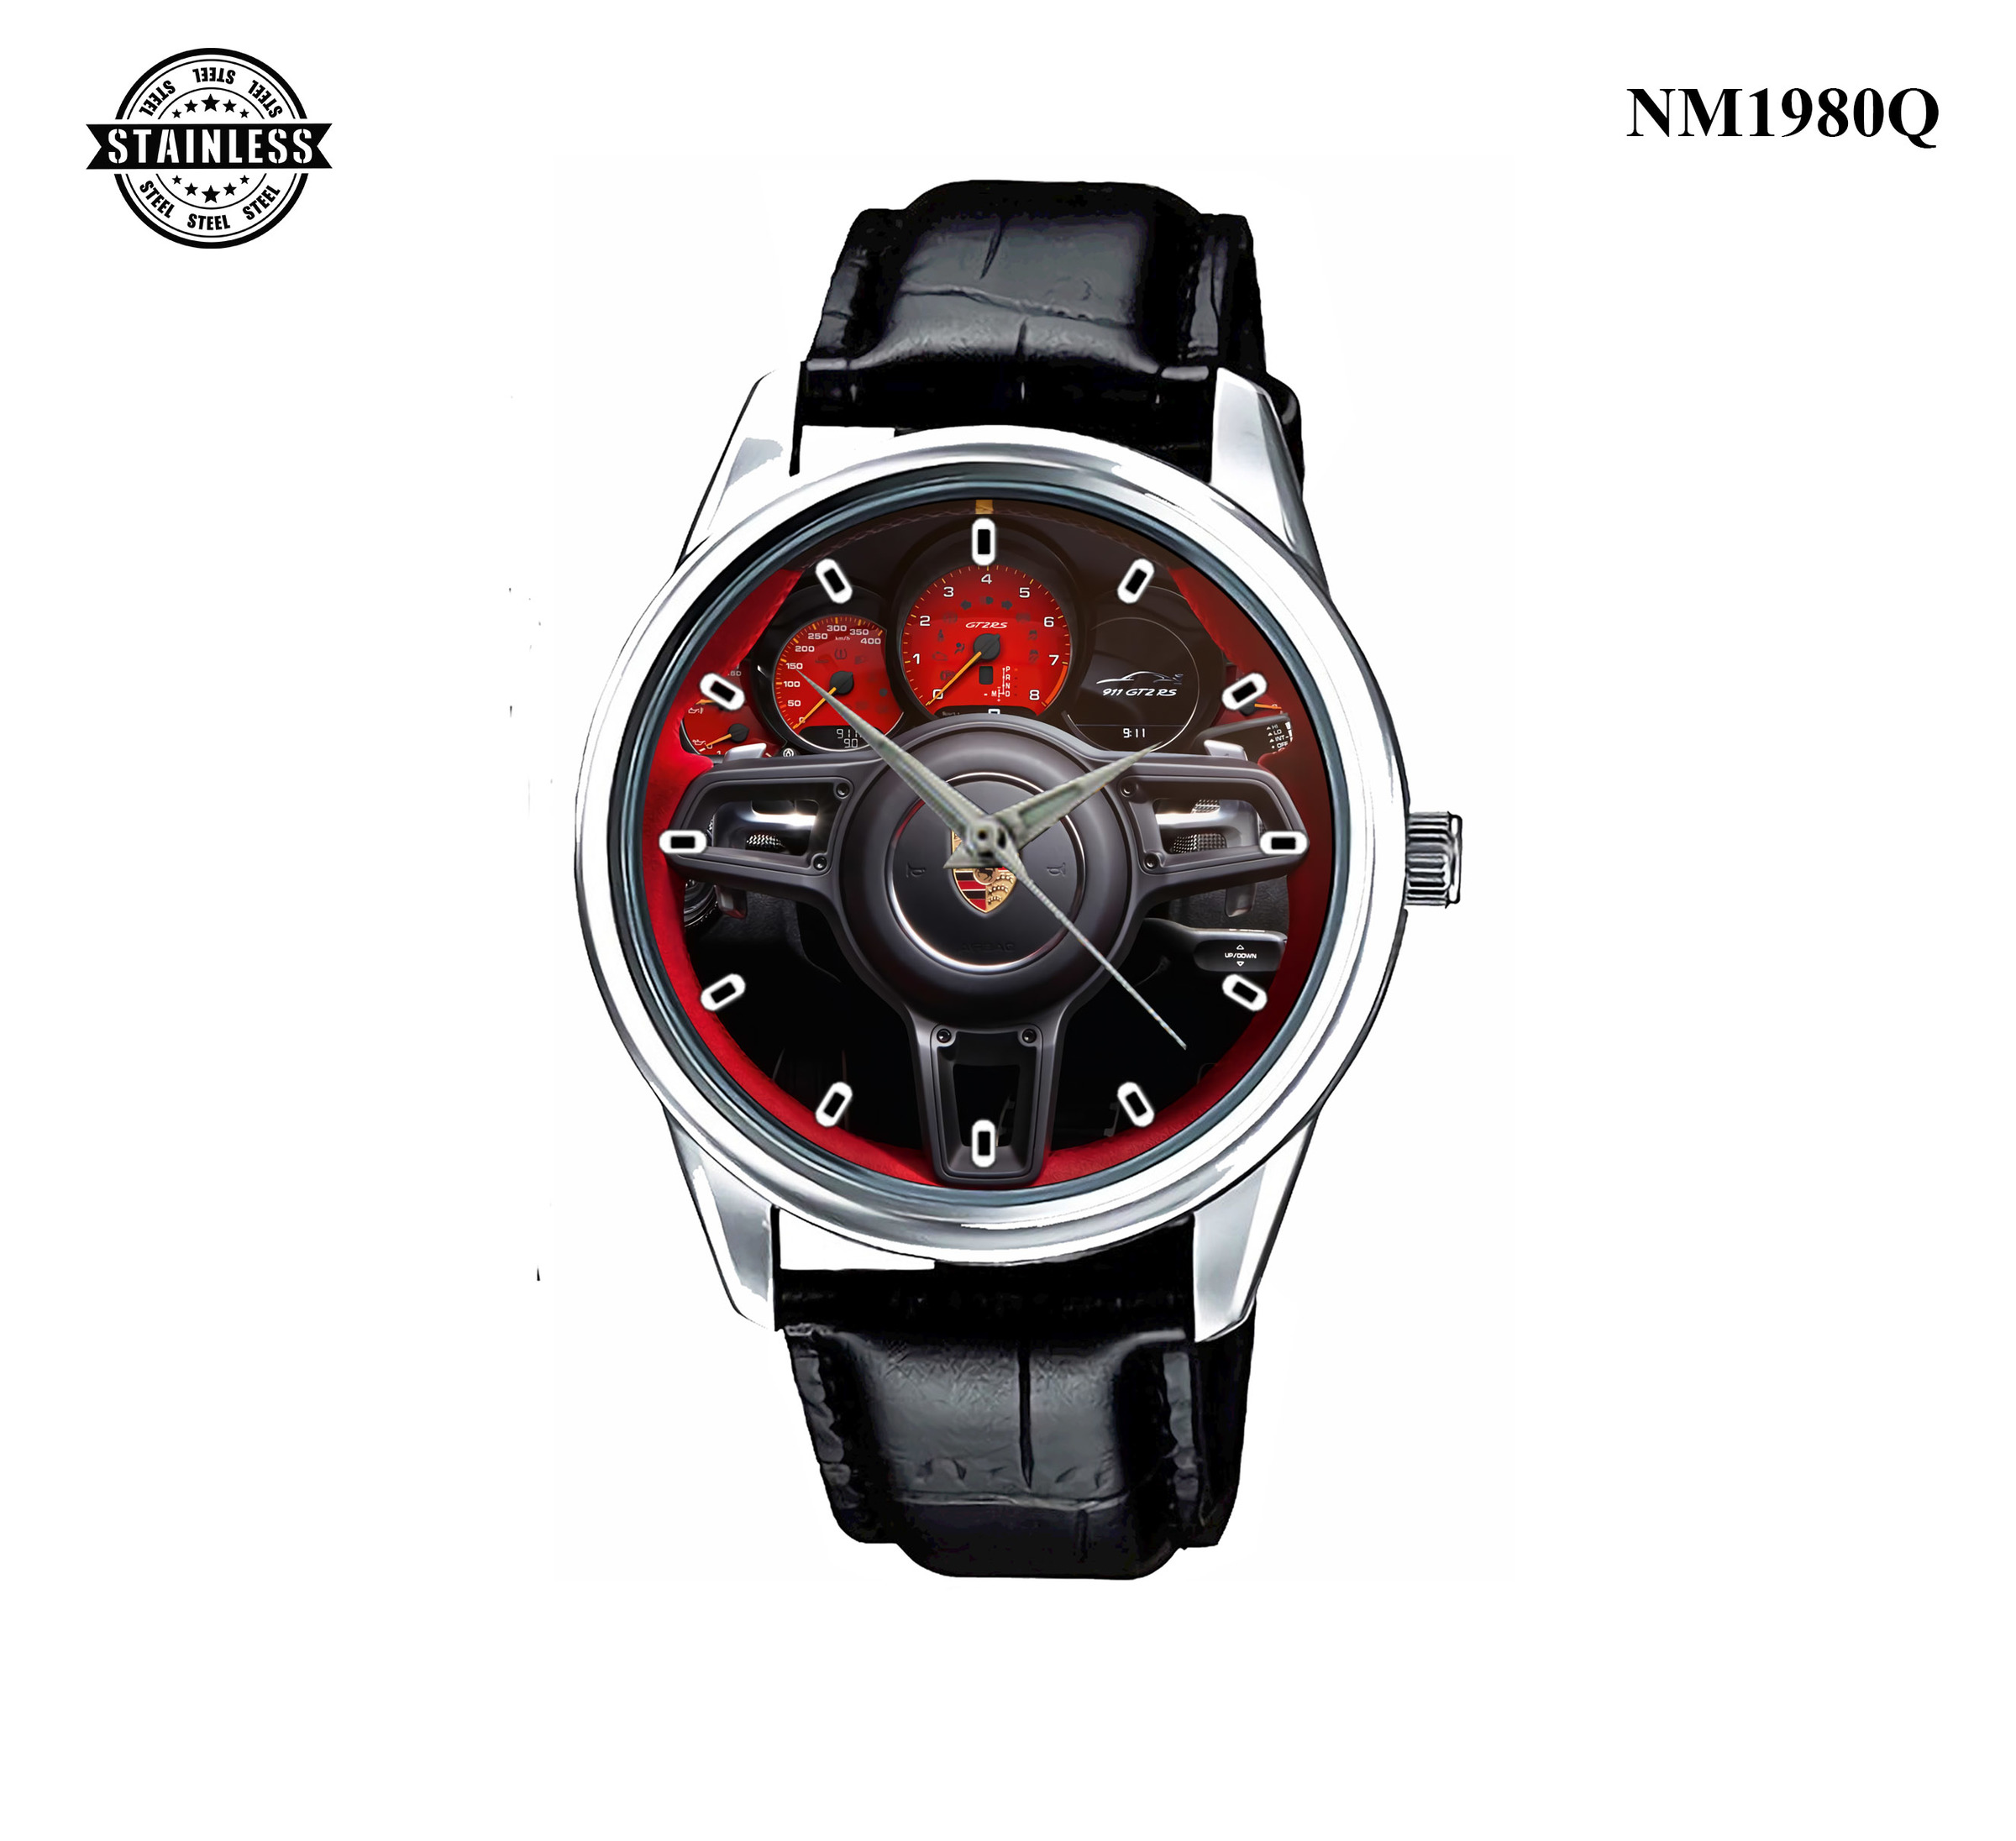 1.4 New Design porsche gt2 rs gt3 alcantara steering wheel 991 red Sport Leather Watch.jpg